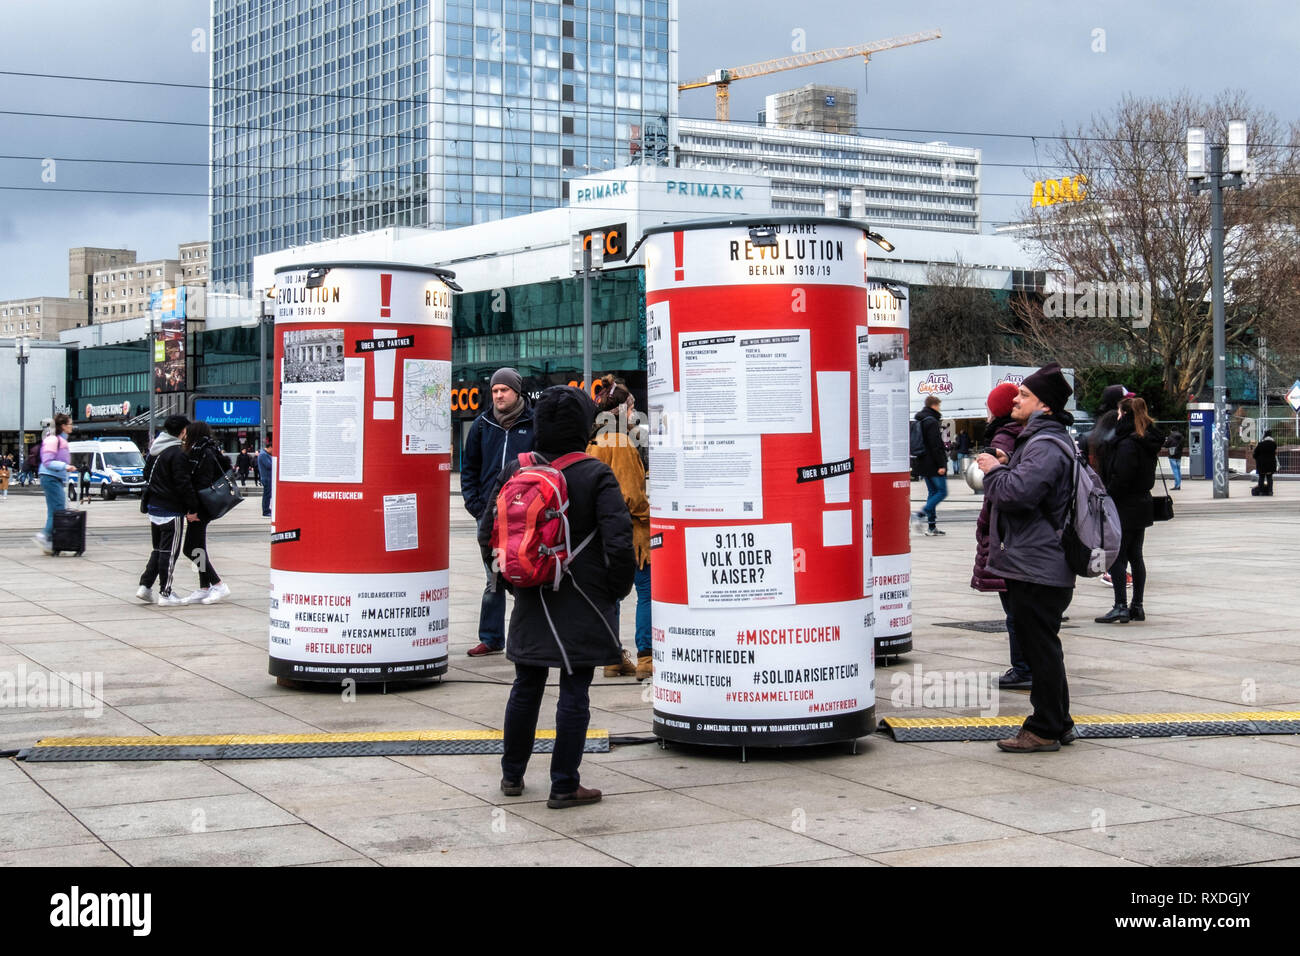 Berlin, Germany. 8th Mar 2019.  Exhibition celebrating 100 years of Revolution 1918-1919 using placards, information towers and a mobile furniture van to document historical events. During the November revolution furniture vans were used as barricades and a historic furniture van is a central element of this winter exhibition theme that documents the event. November 2018 marked the 100th anniversary of the end of the First World War and the November Revolution. Credit: Eden Breitz/Alamy Live News - Stock Image